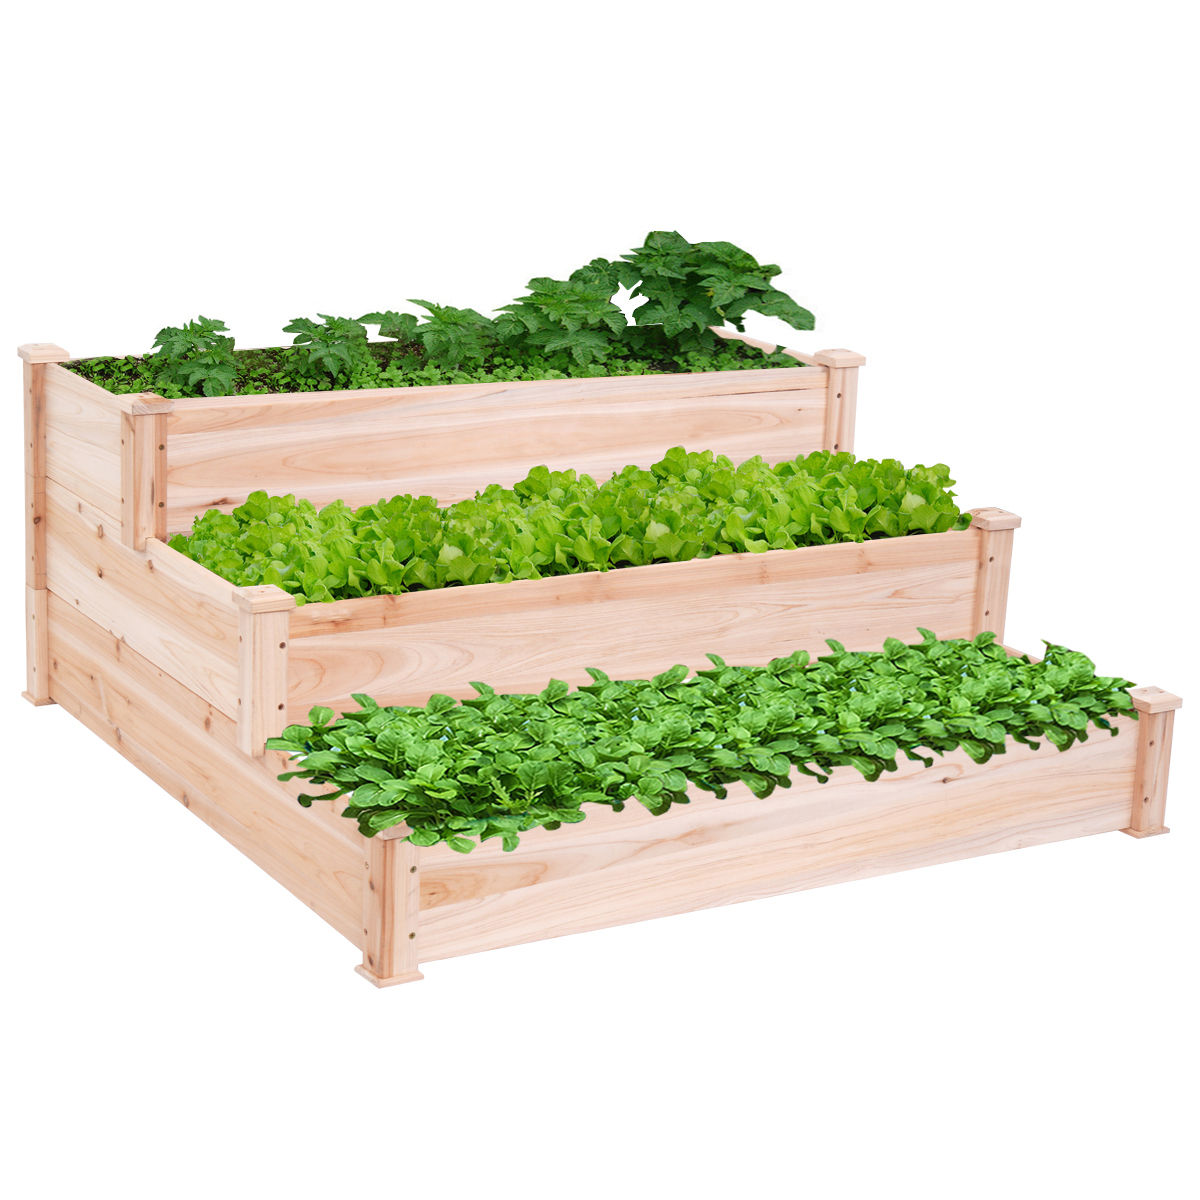 Costway Wooden Raised Vegetable Garden Bed 3 Tier Elevated Planter Kit Outdoor Gardening by Costway